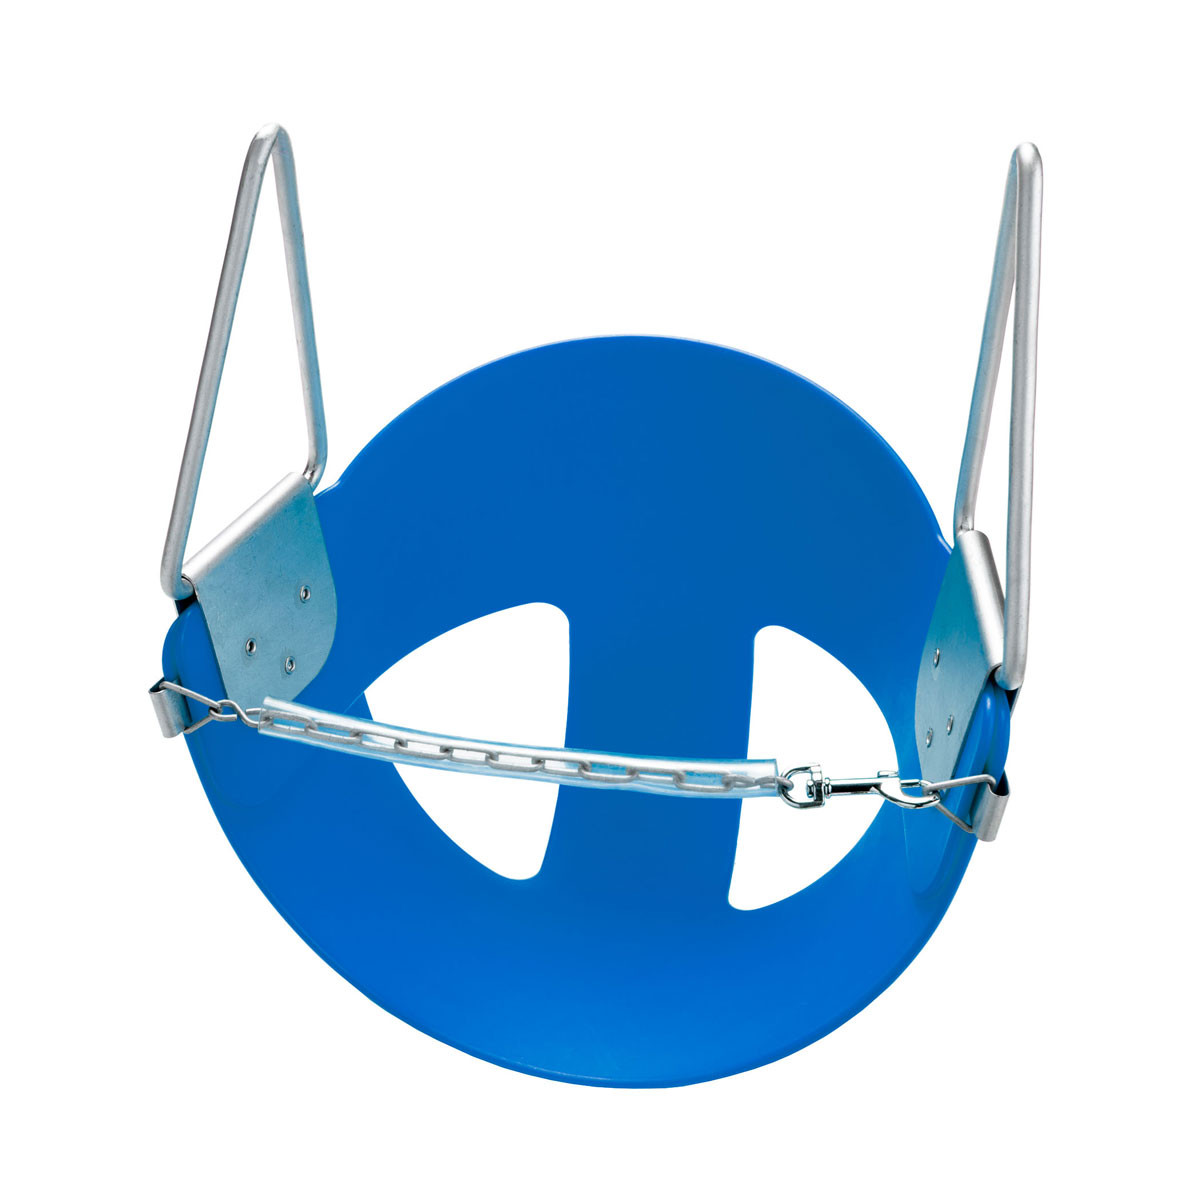 CoPoly Half Bucket Swing Seat (S-13R) - Blue